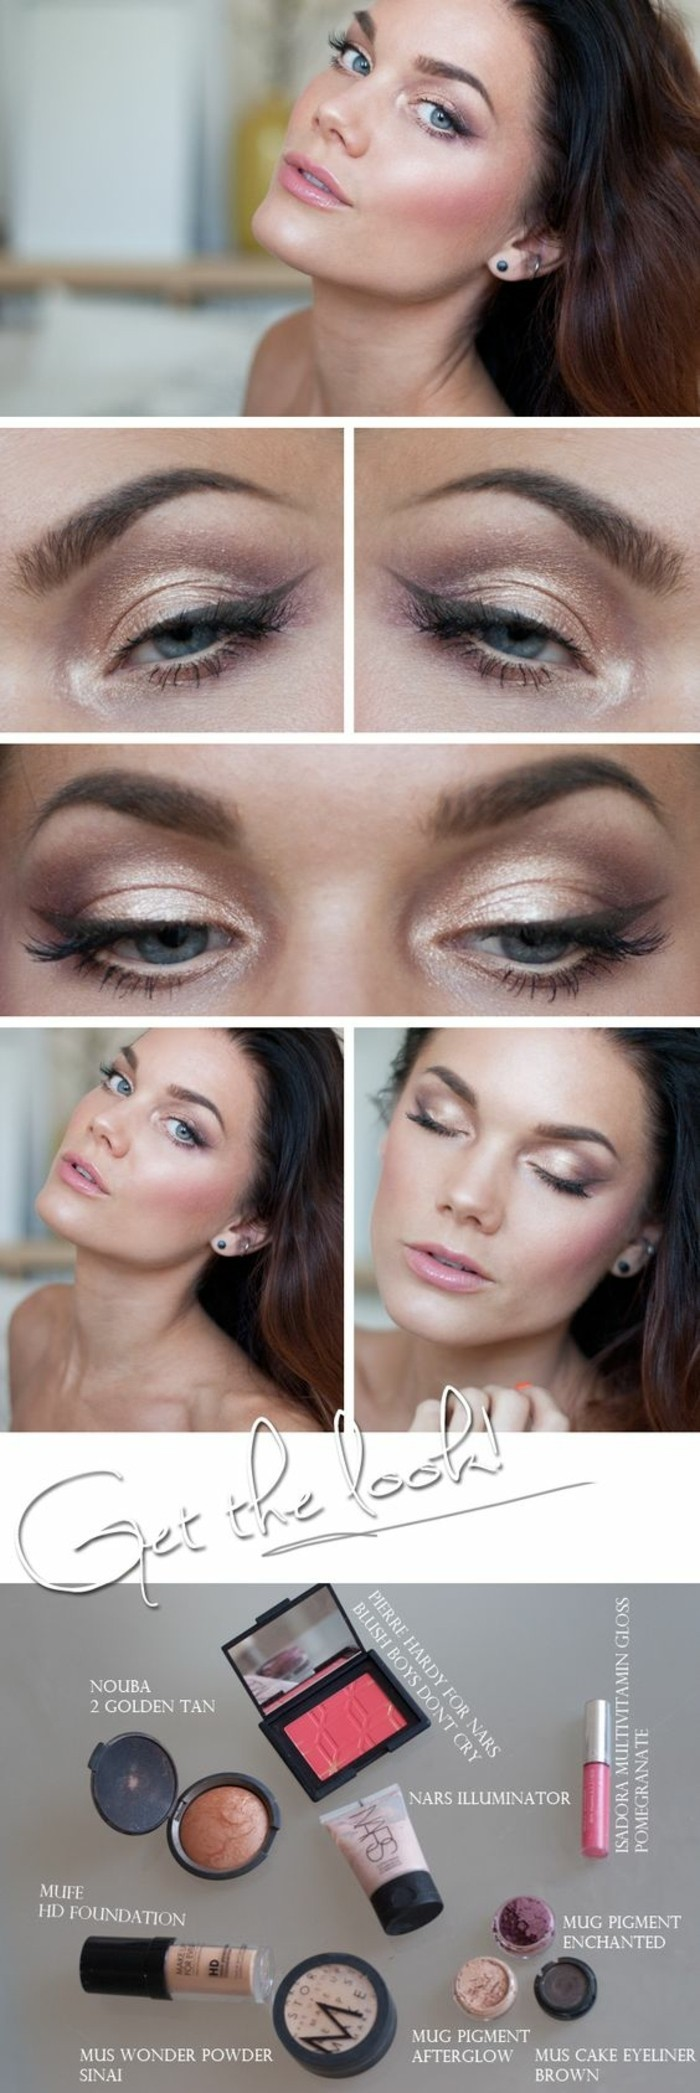 000-maquillage-discret-facile-naturel-diy-idees-tuto-maquillage-yeux-bleus